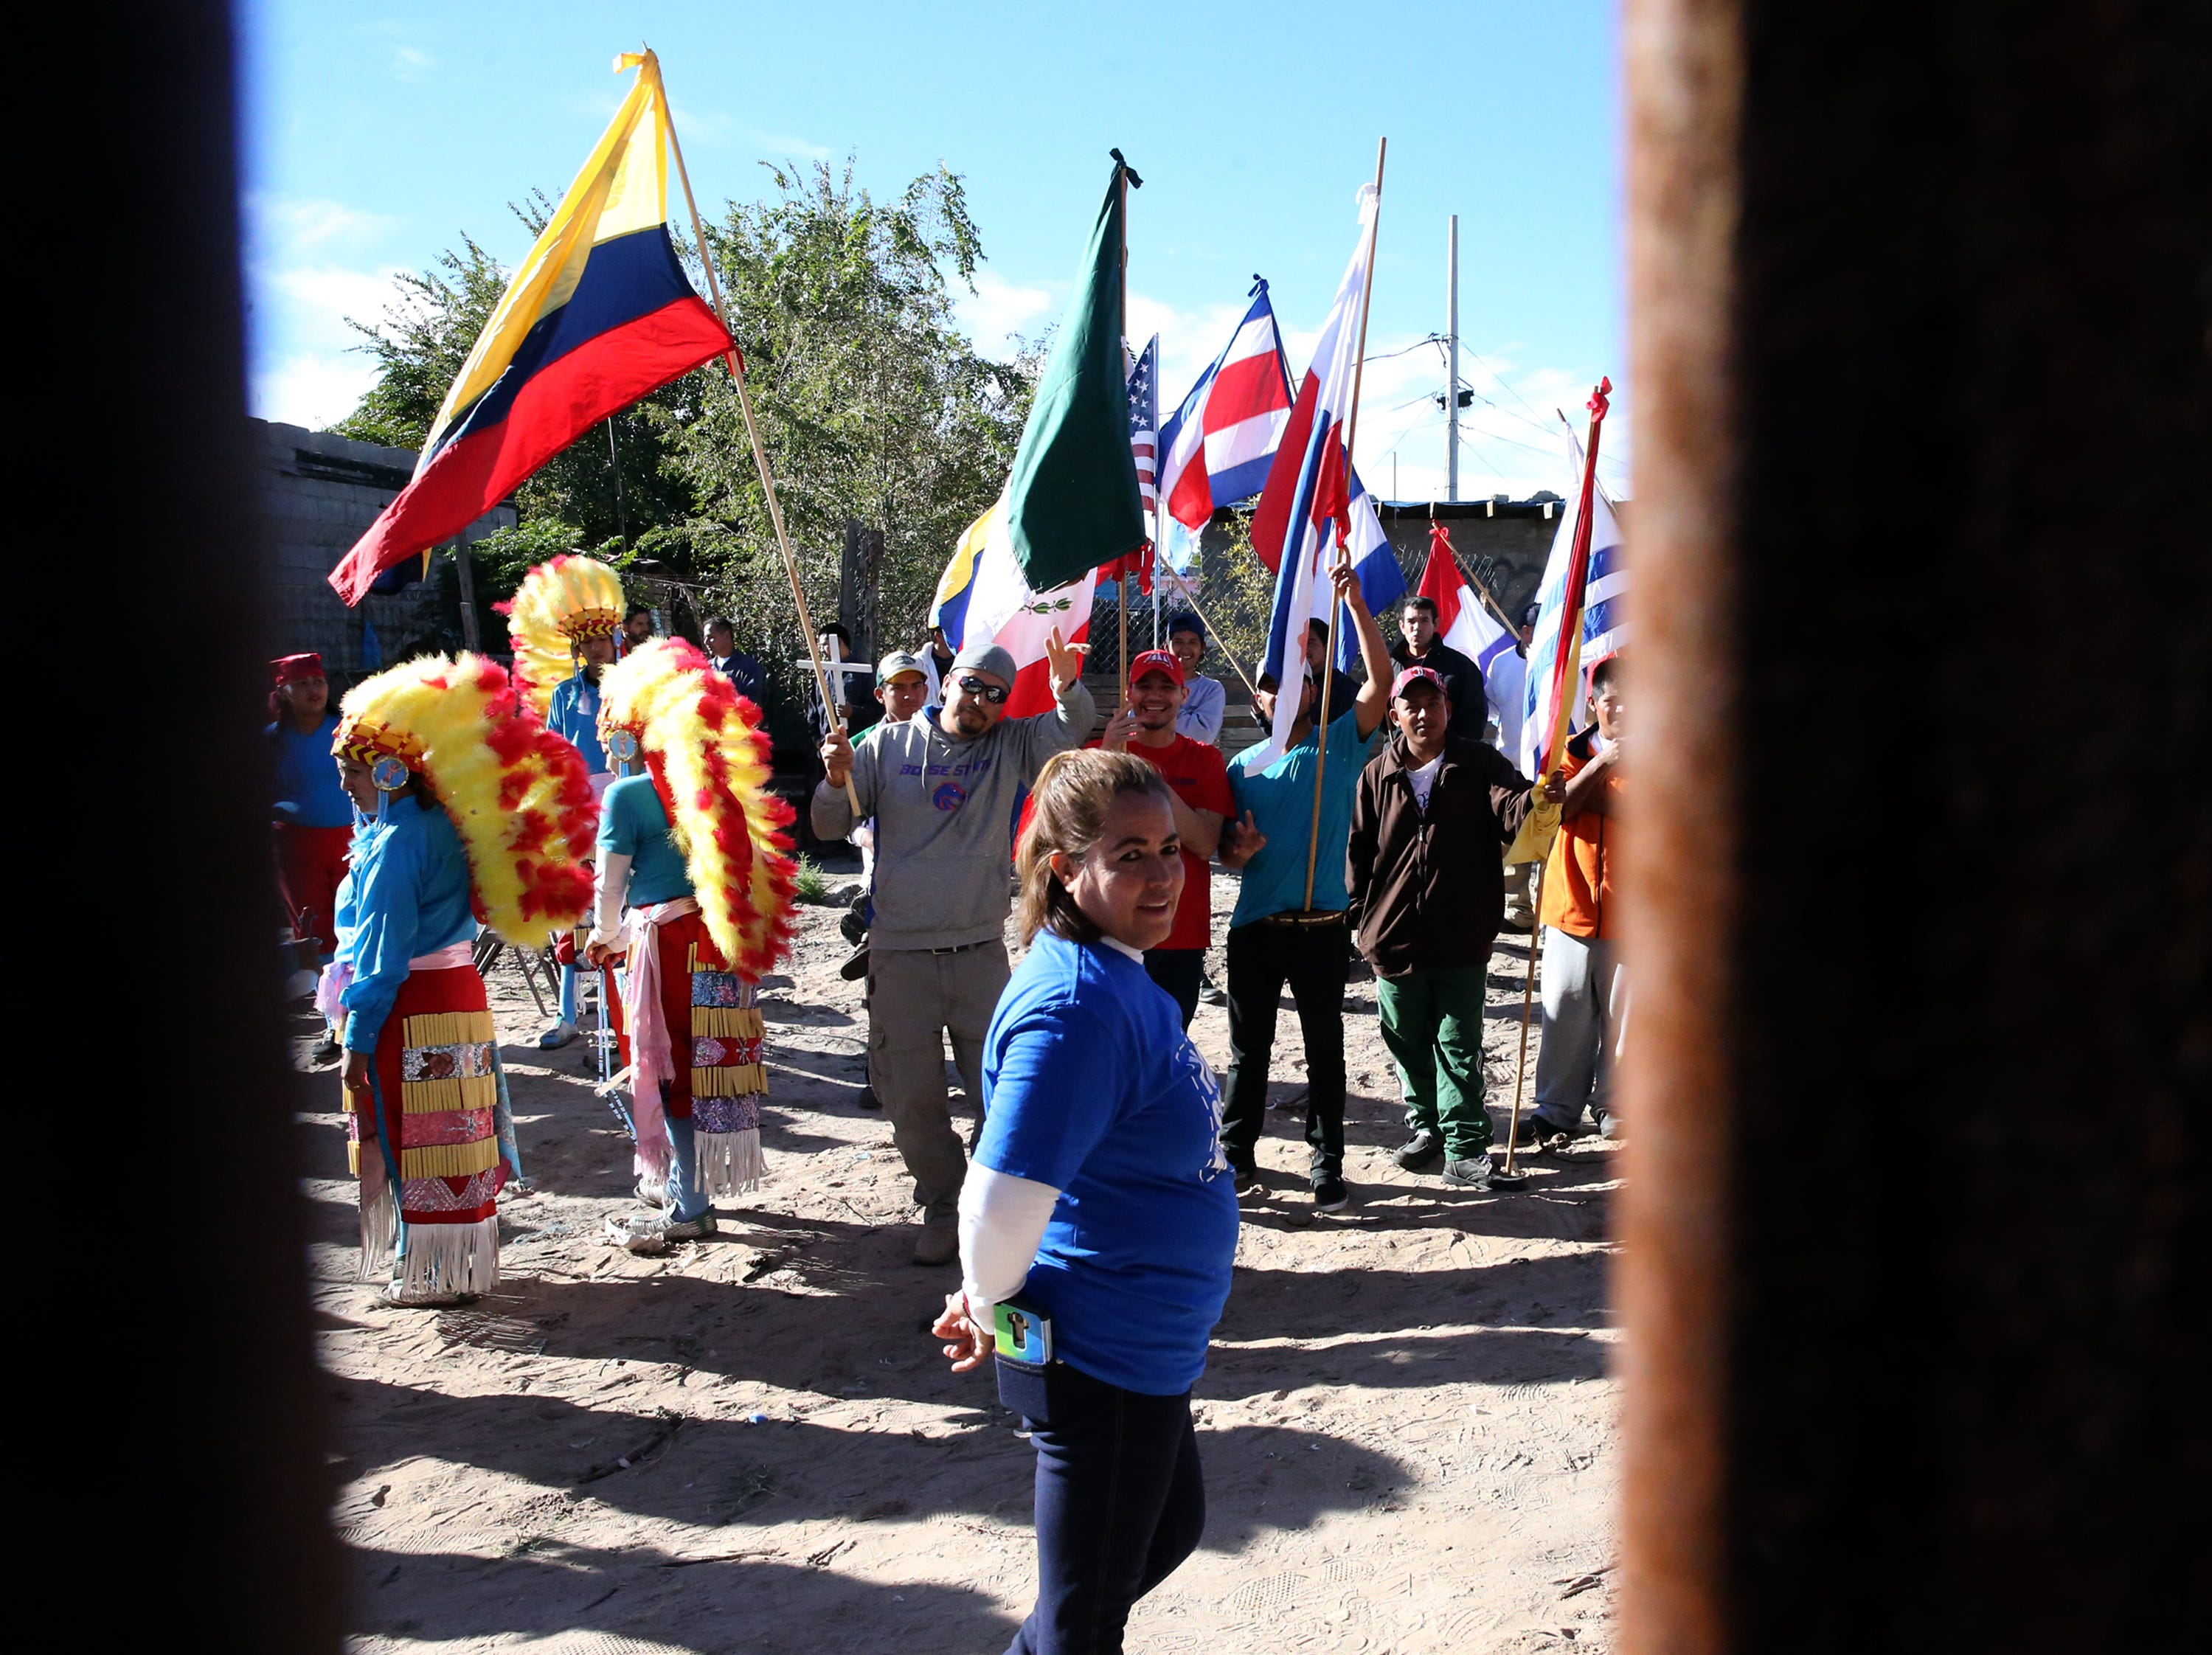 The gathering of flags on the Mexican side of the border fence Saturday.